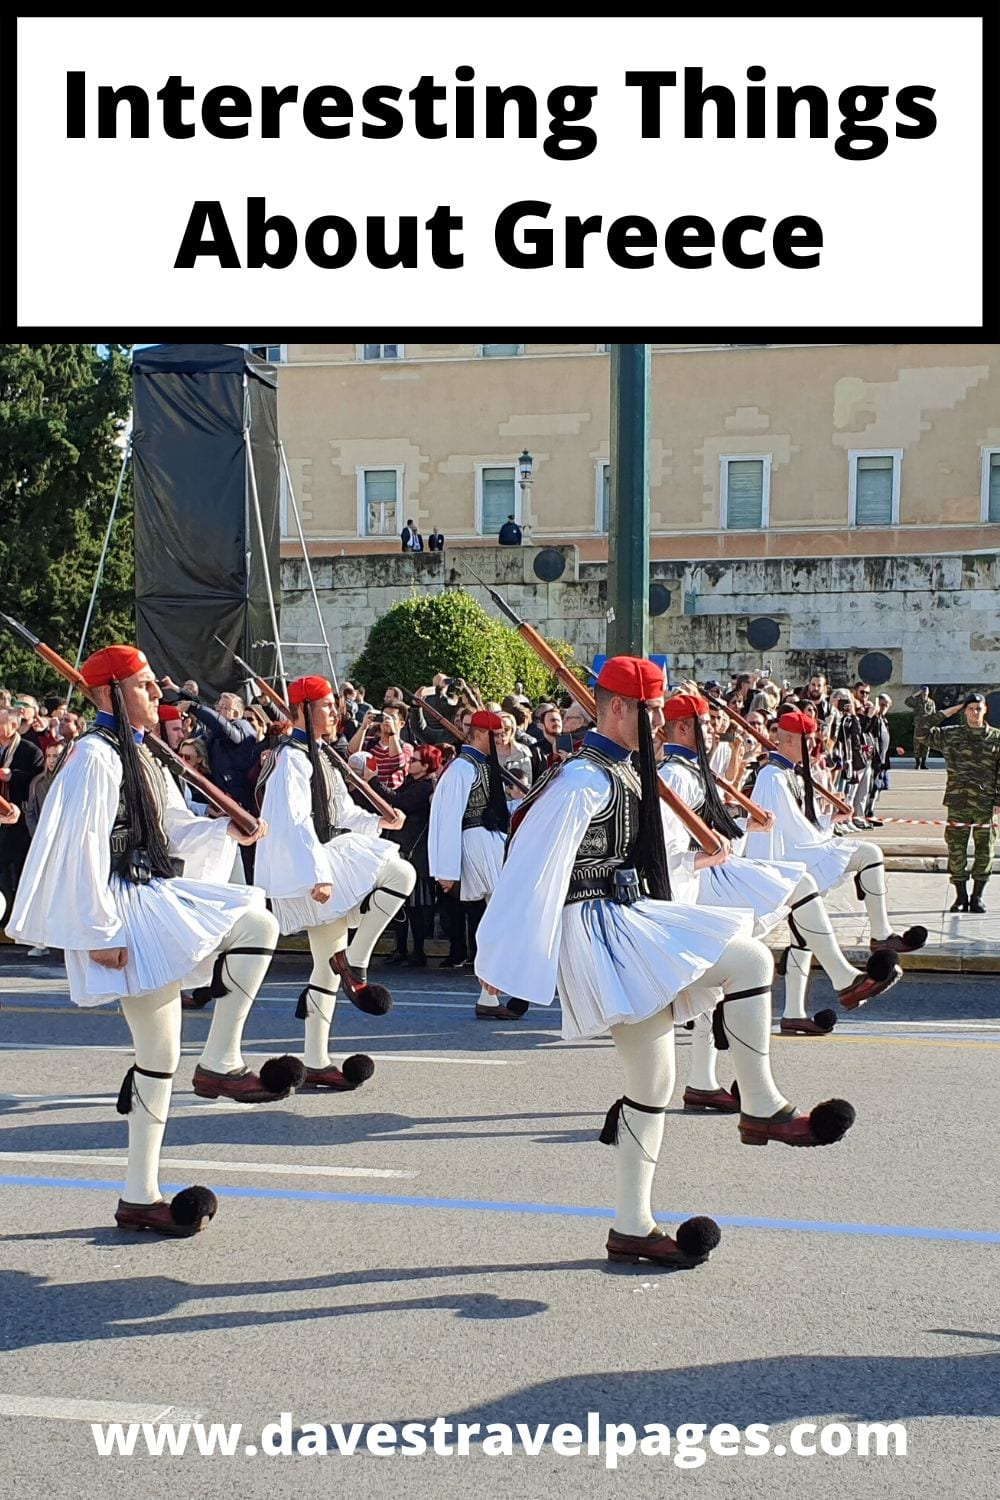 Fun Facts and Interesting Things About Greece